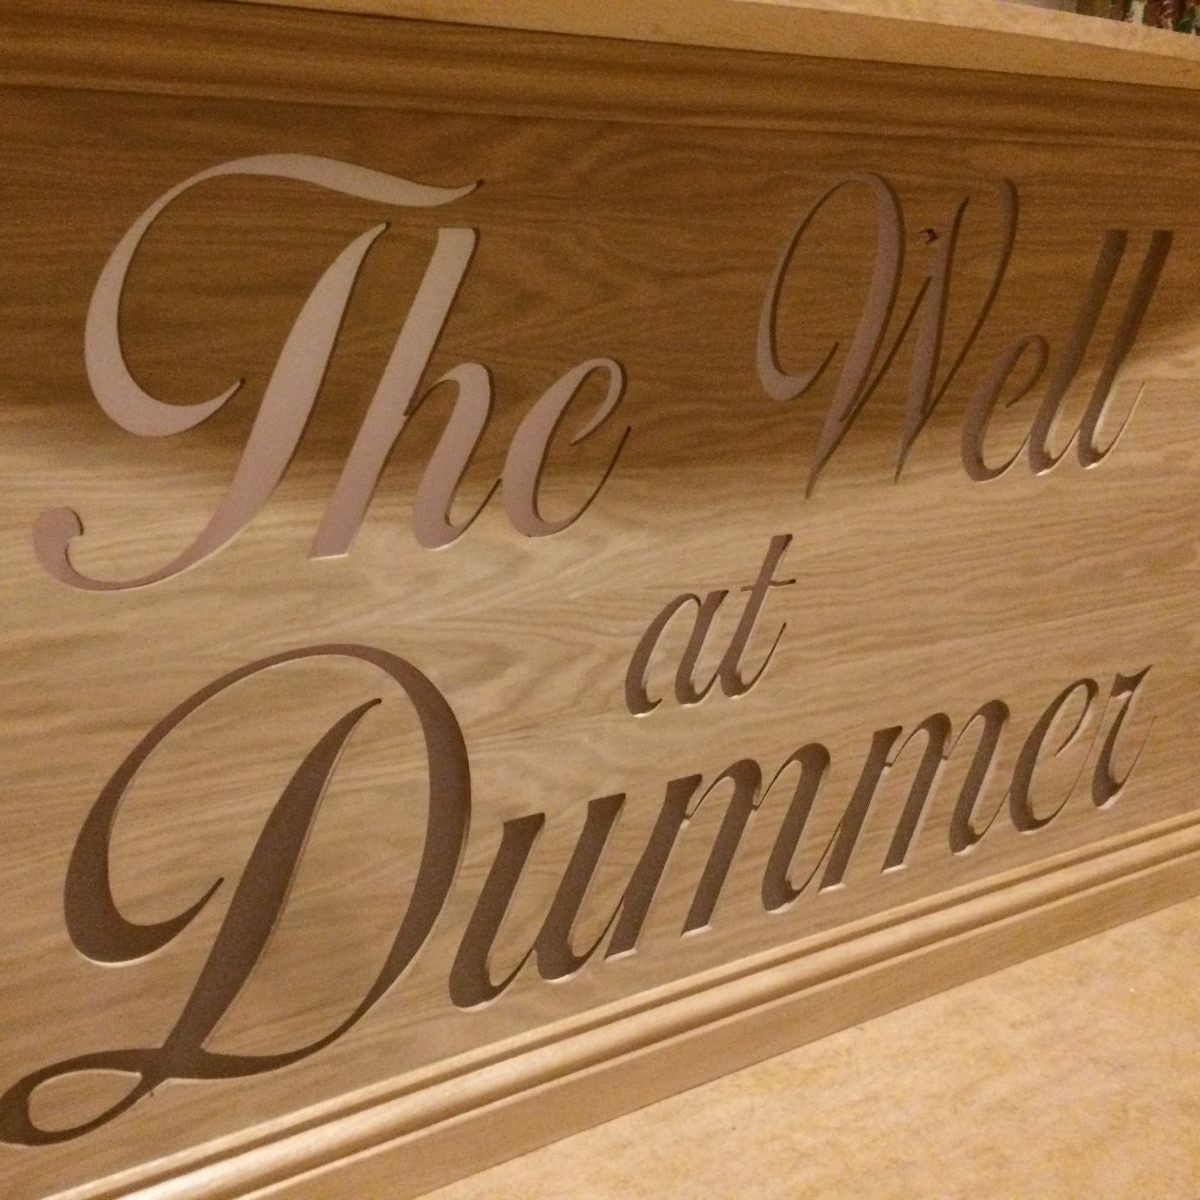 Dummer Vilage Hall Collapsable Bar CNC Router TIN SHED Square.jpg